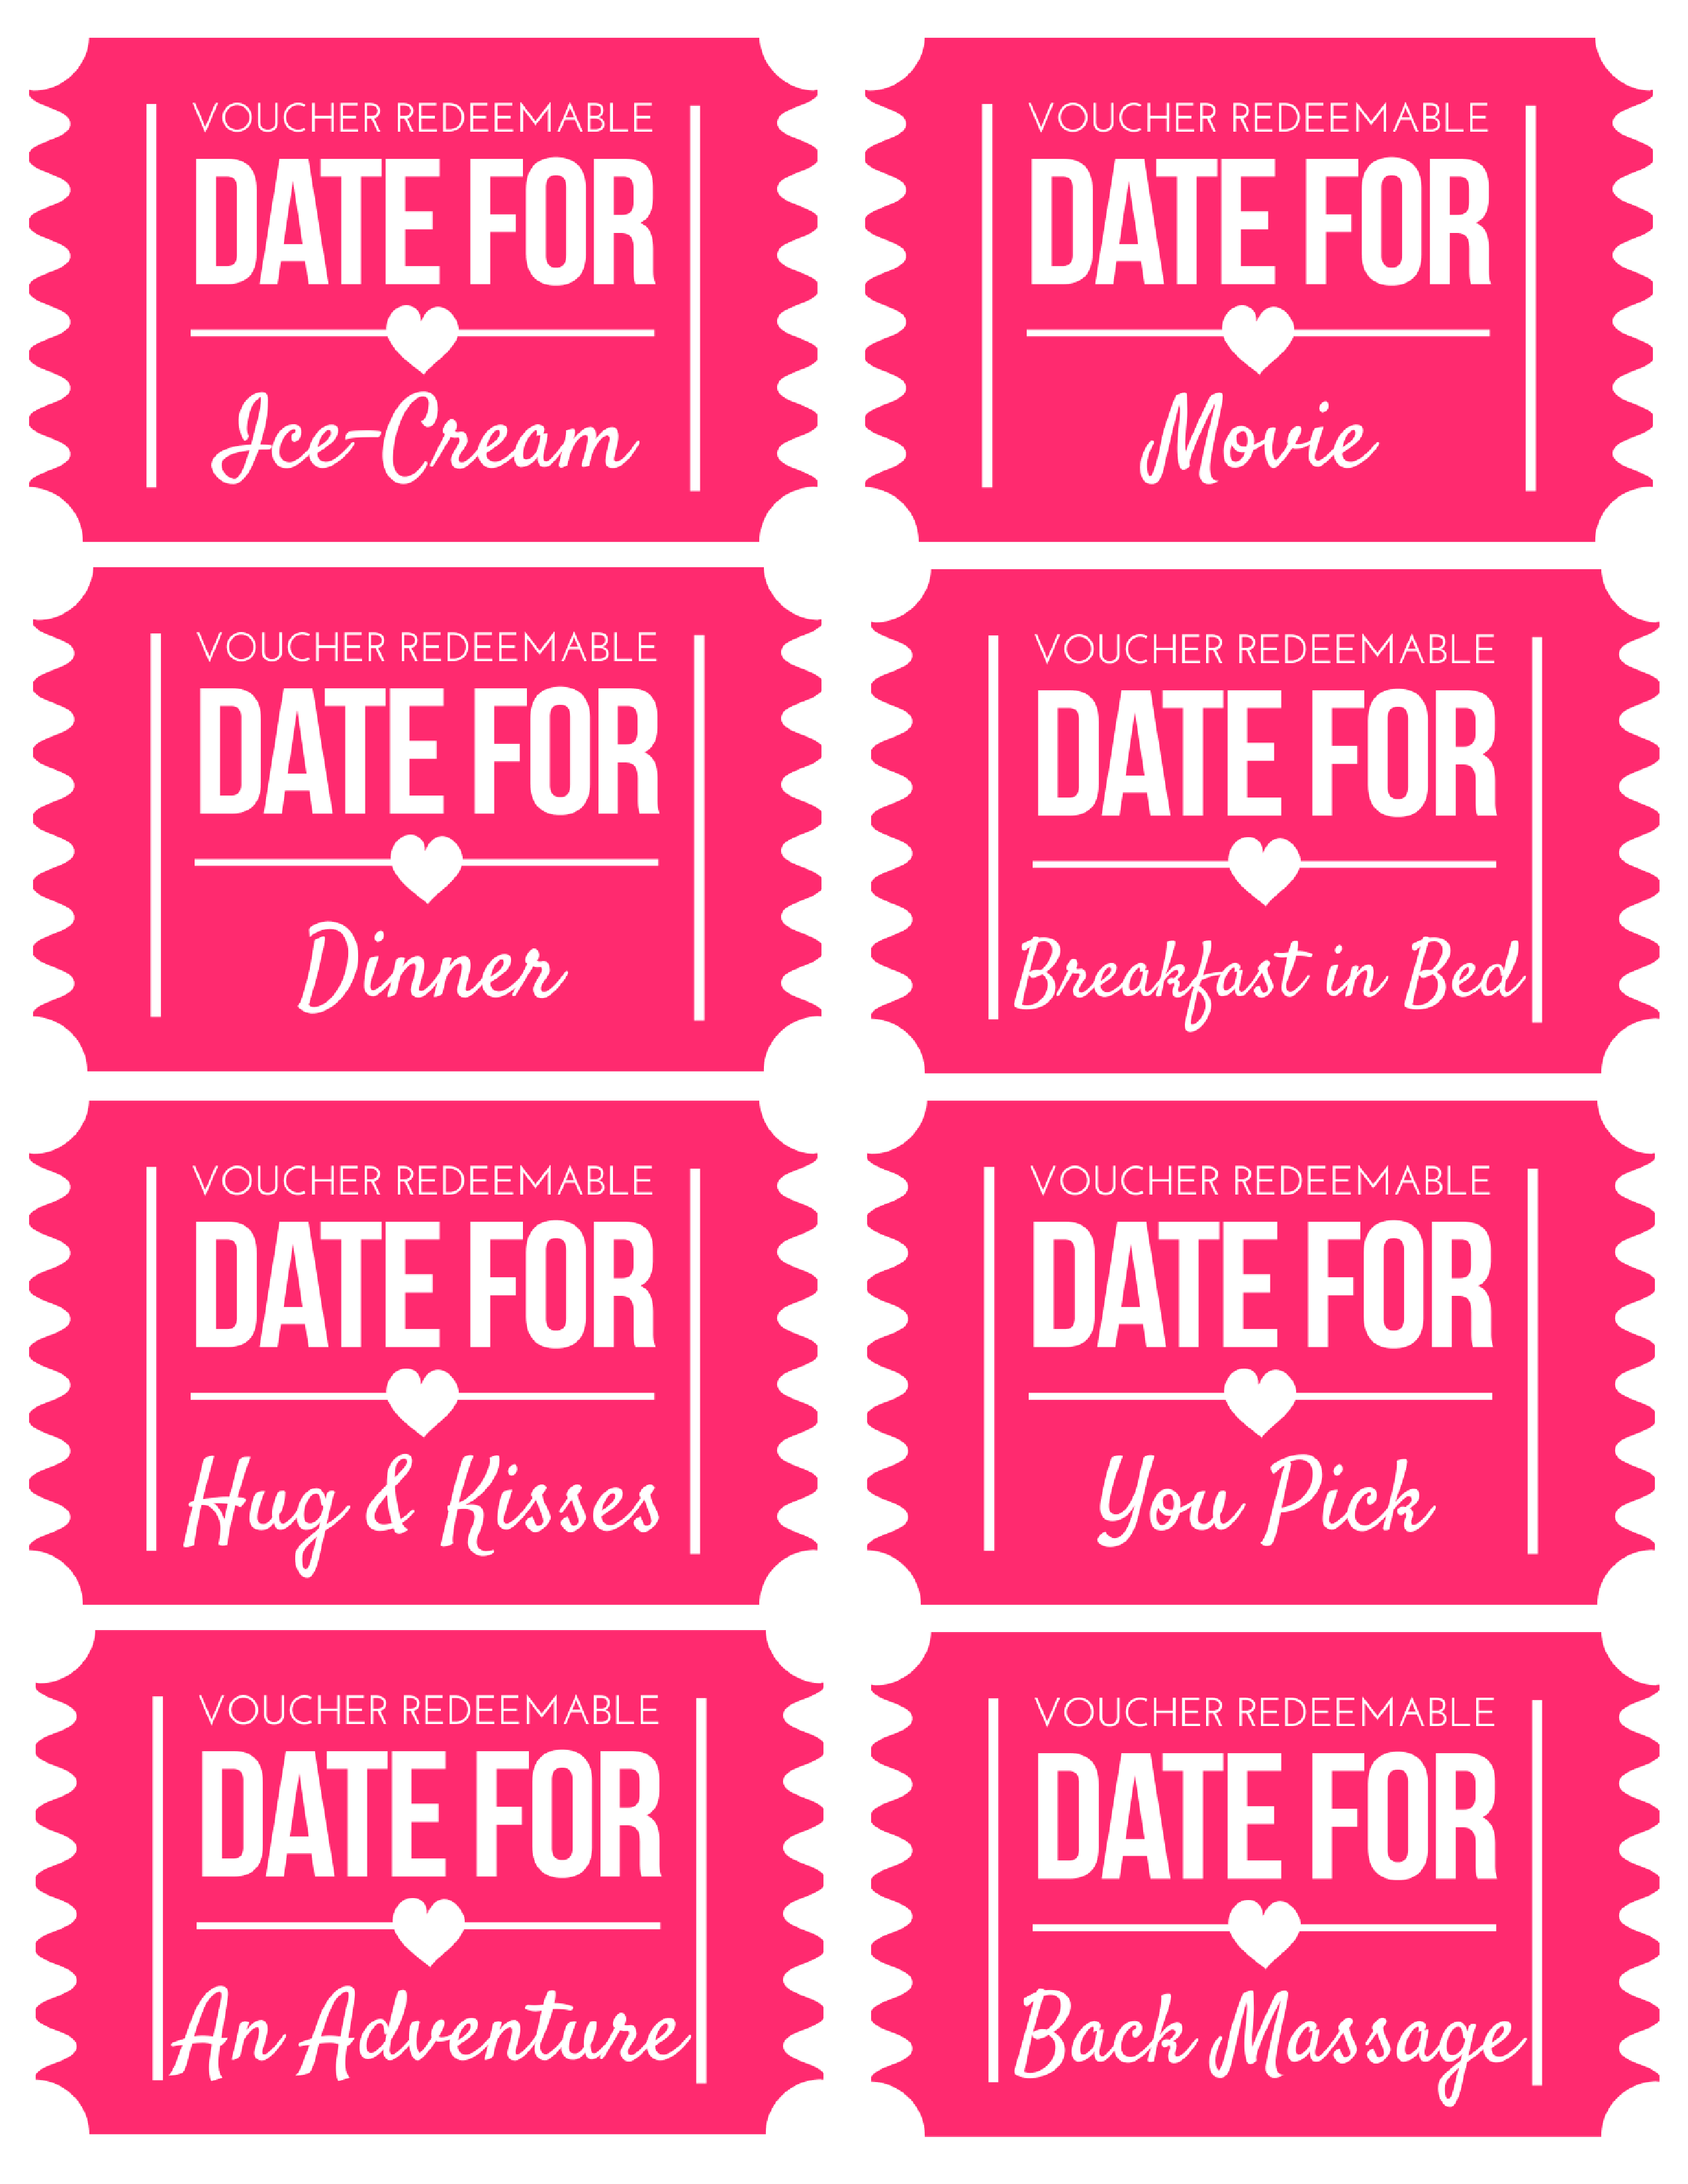 Free Printable Valentines Day Coupons | Coupons for